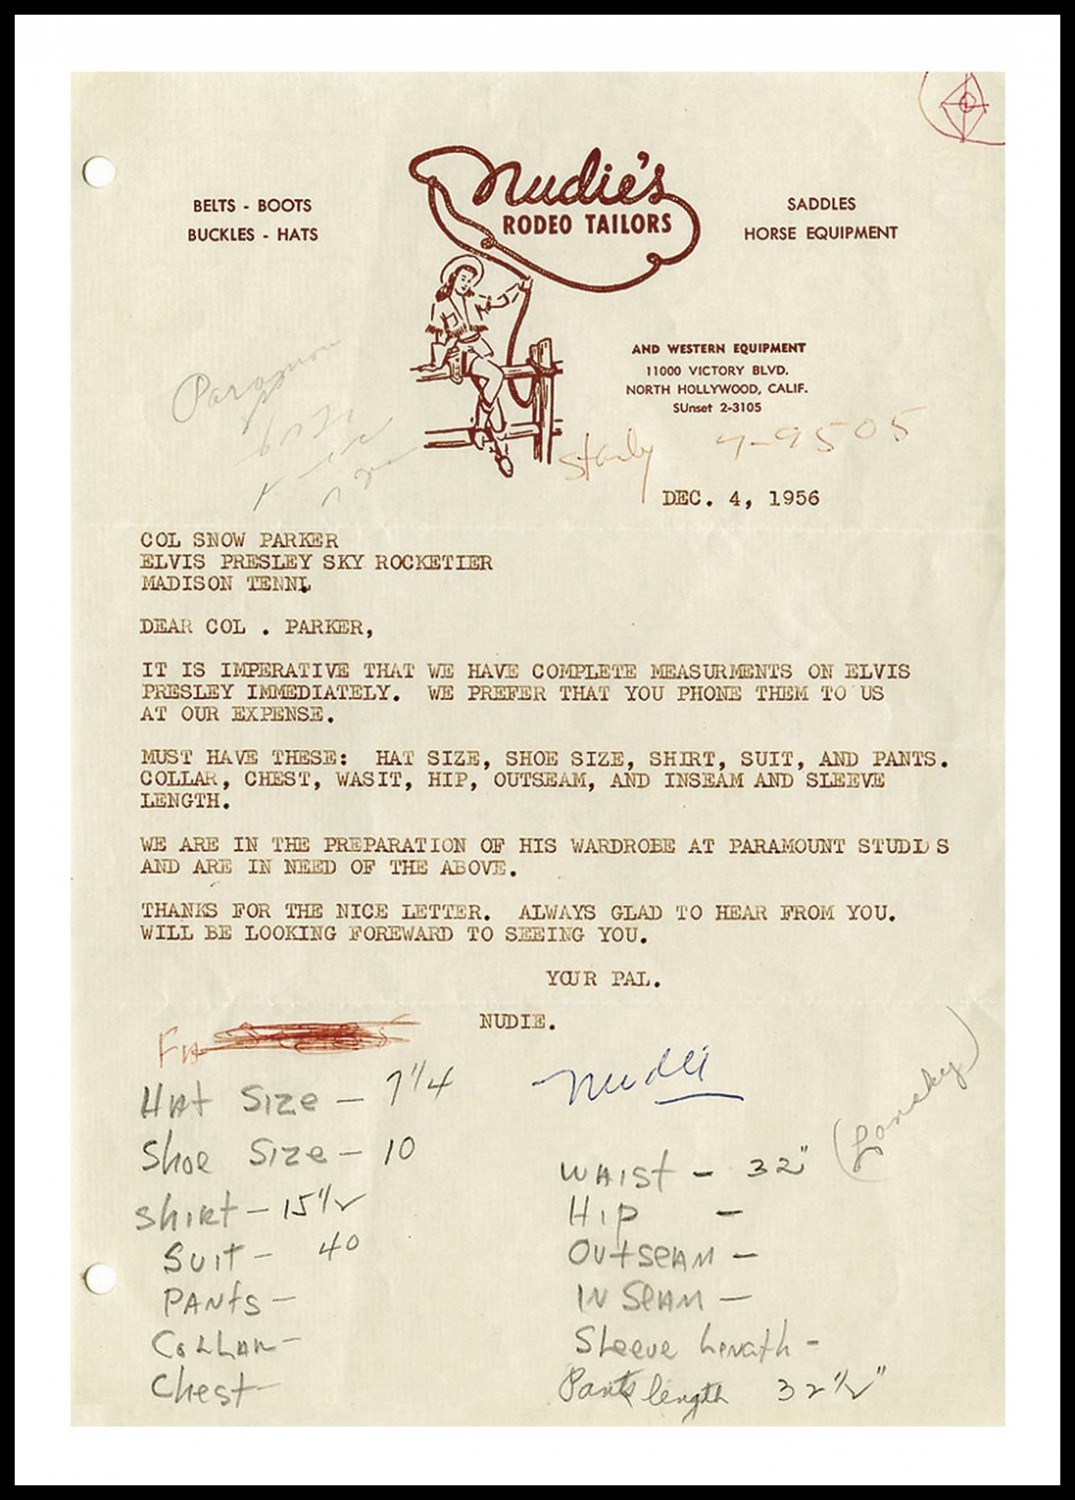 Nudie letter to Parker (December 4, 1956)